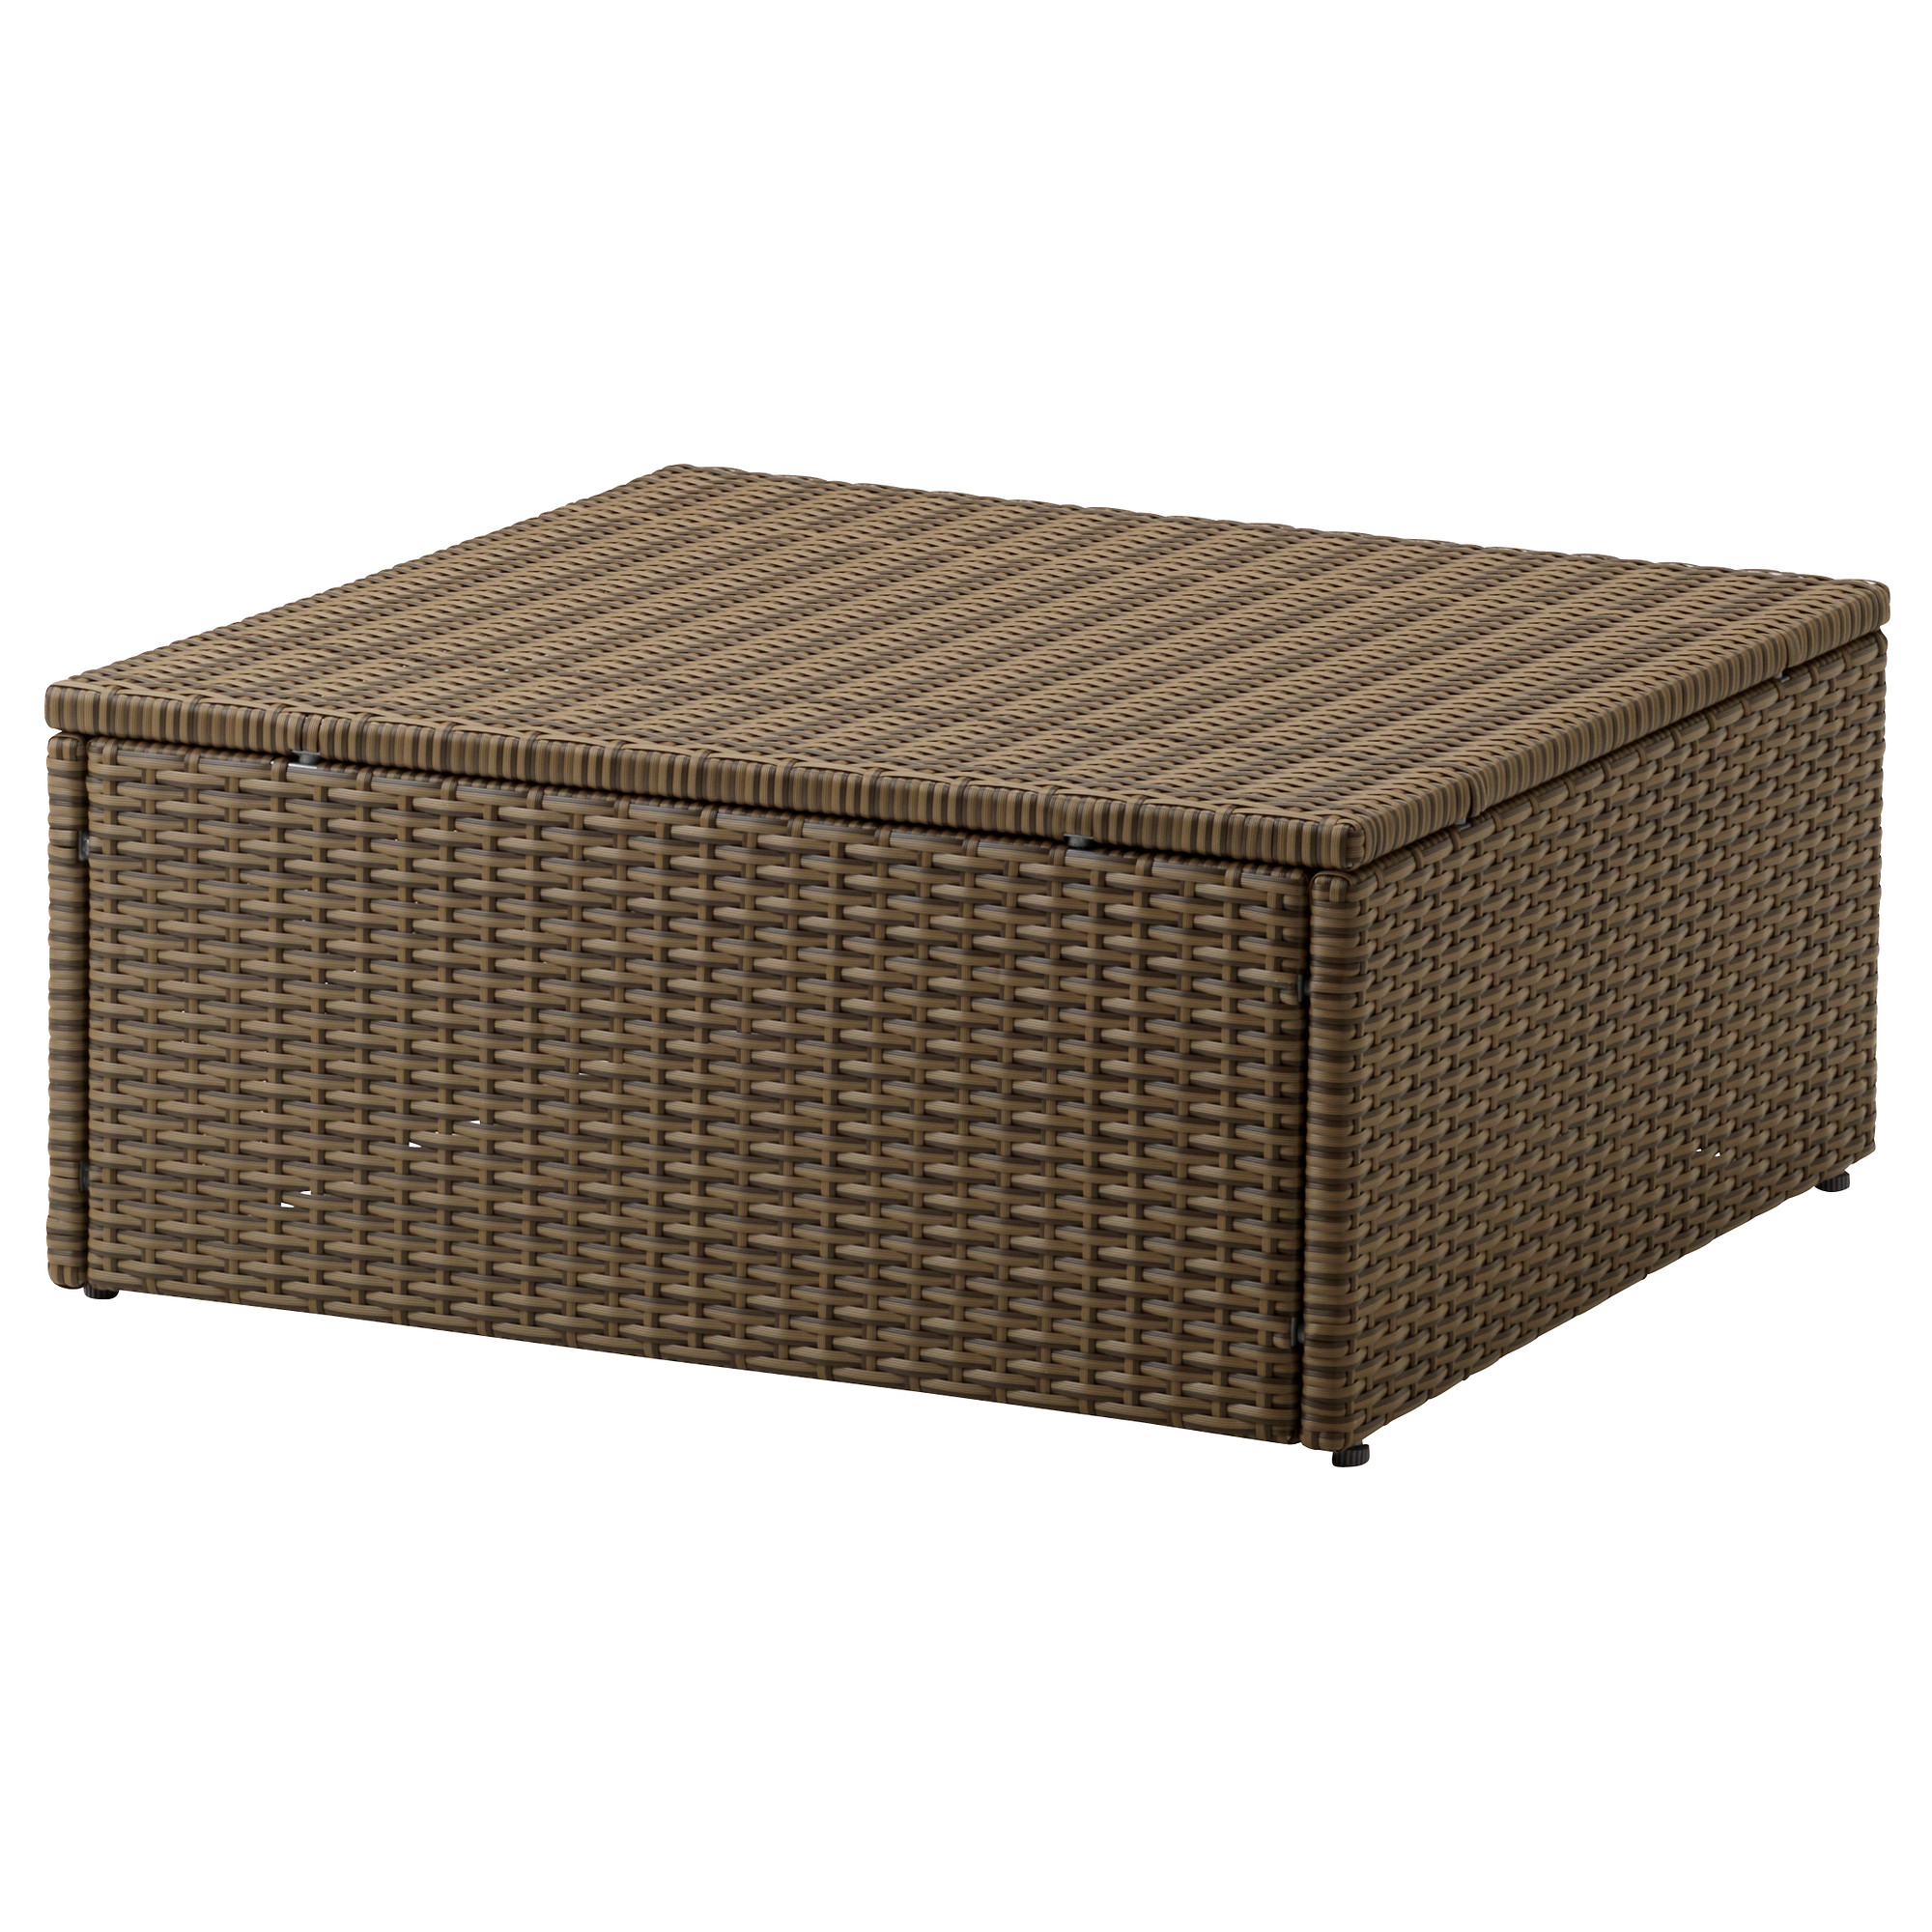 Ikea arholma table stool outdoor by combining different seating sections you can create a sofa in a shape and size that perfectly suits your outdoor